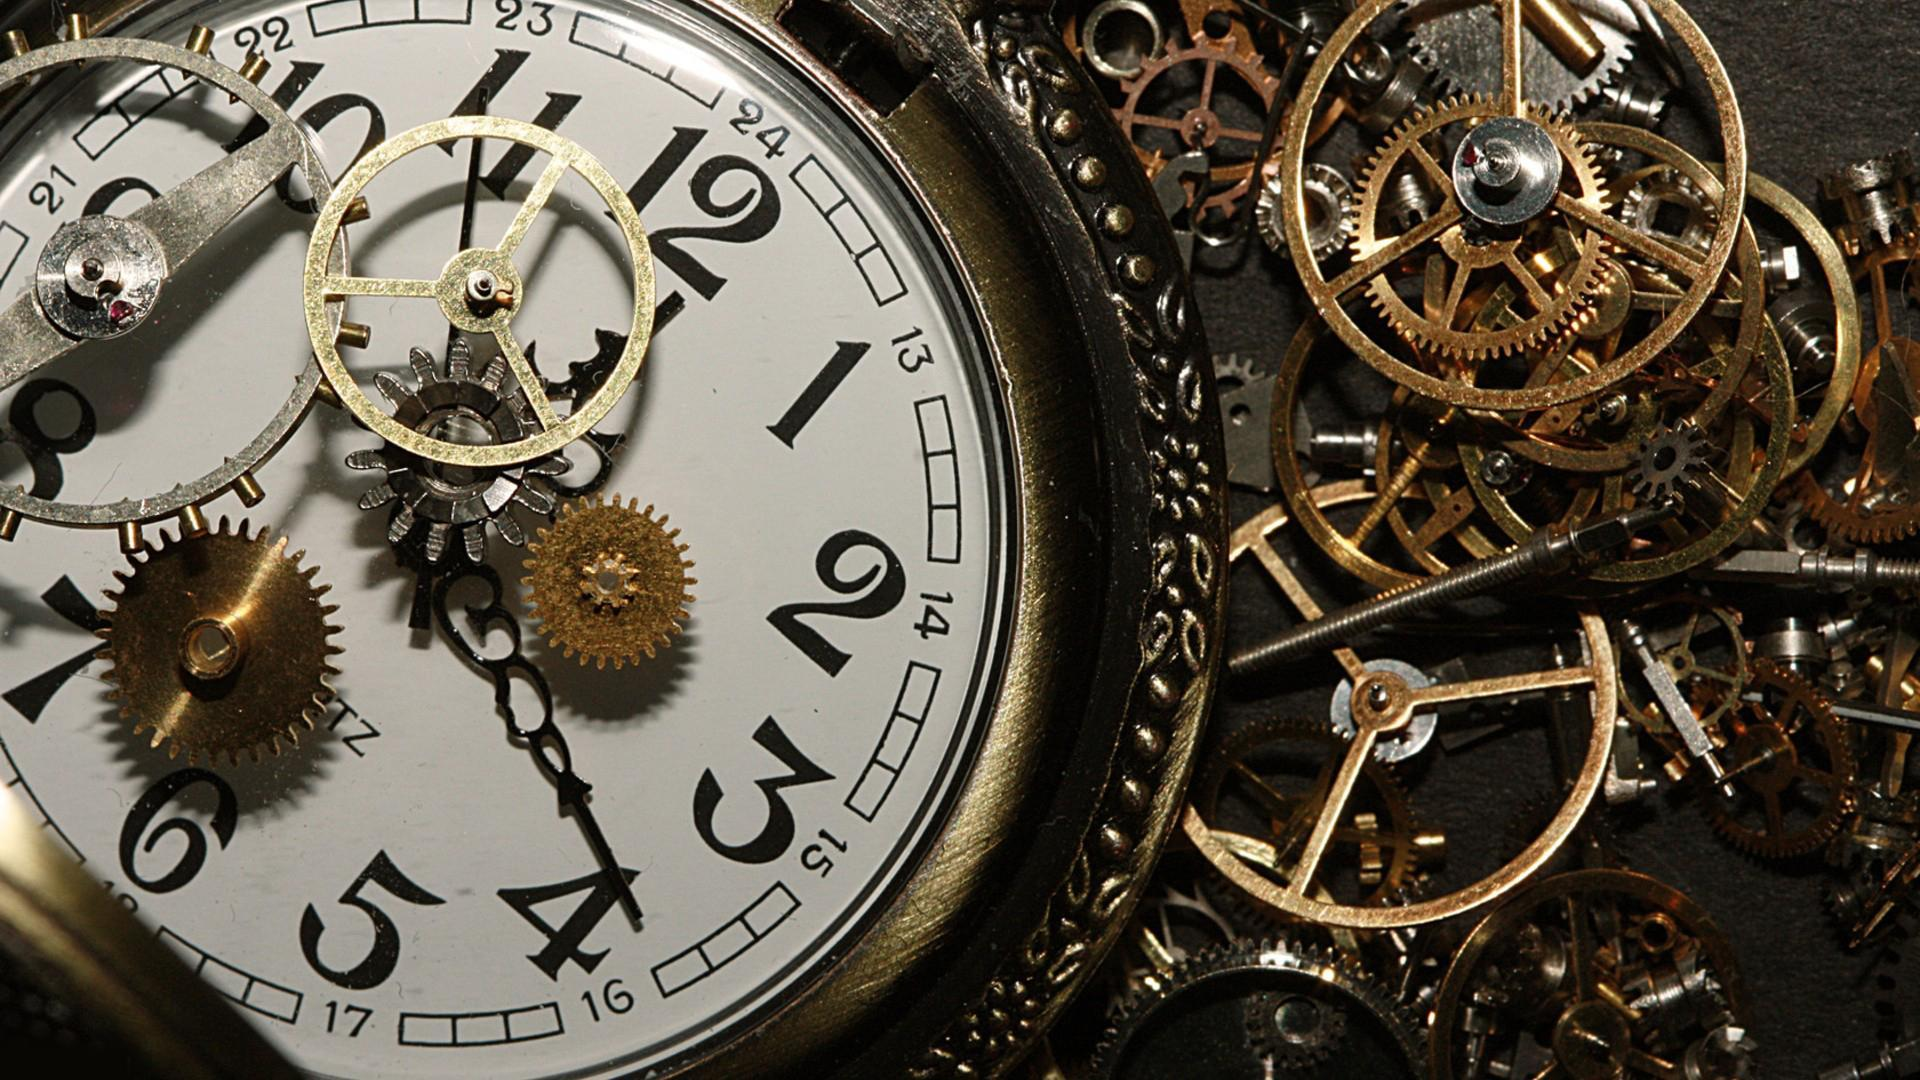 Vintage Mechanism Wallpaper for Android   APK Download 1920x1080